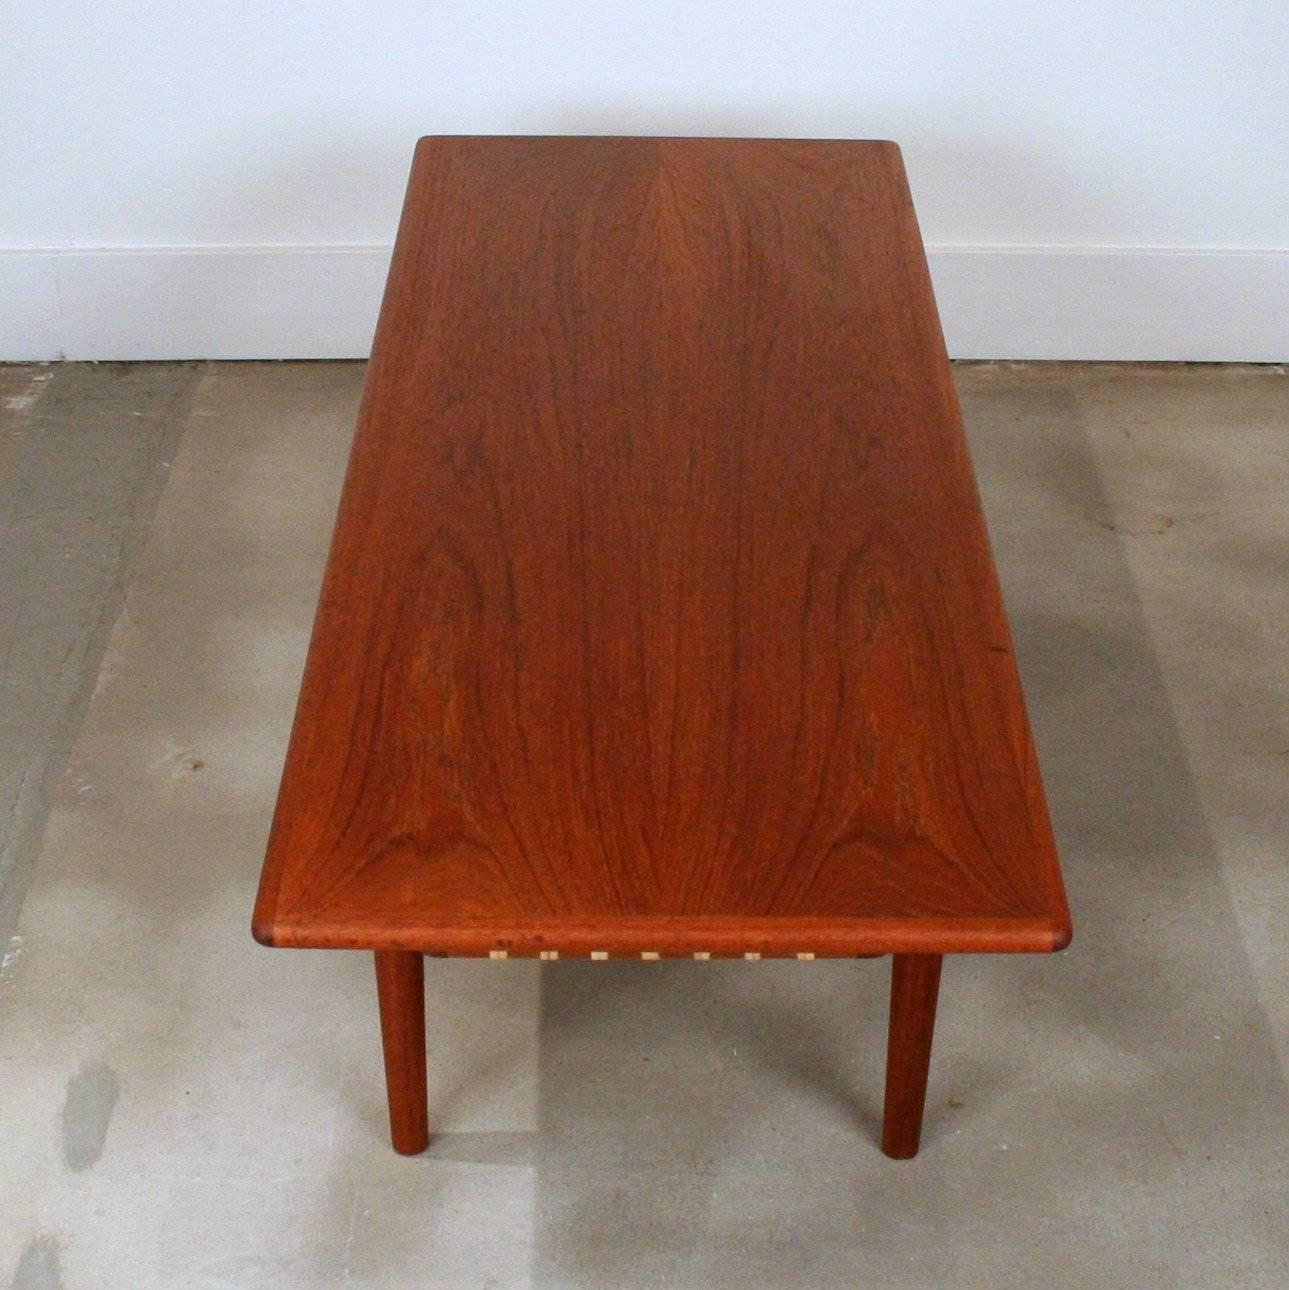 Old Teak Coffee Table: Vintage Danish Teak Coffee Table With Cane Shelf For Sale